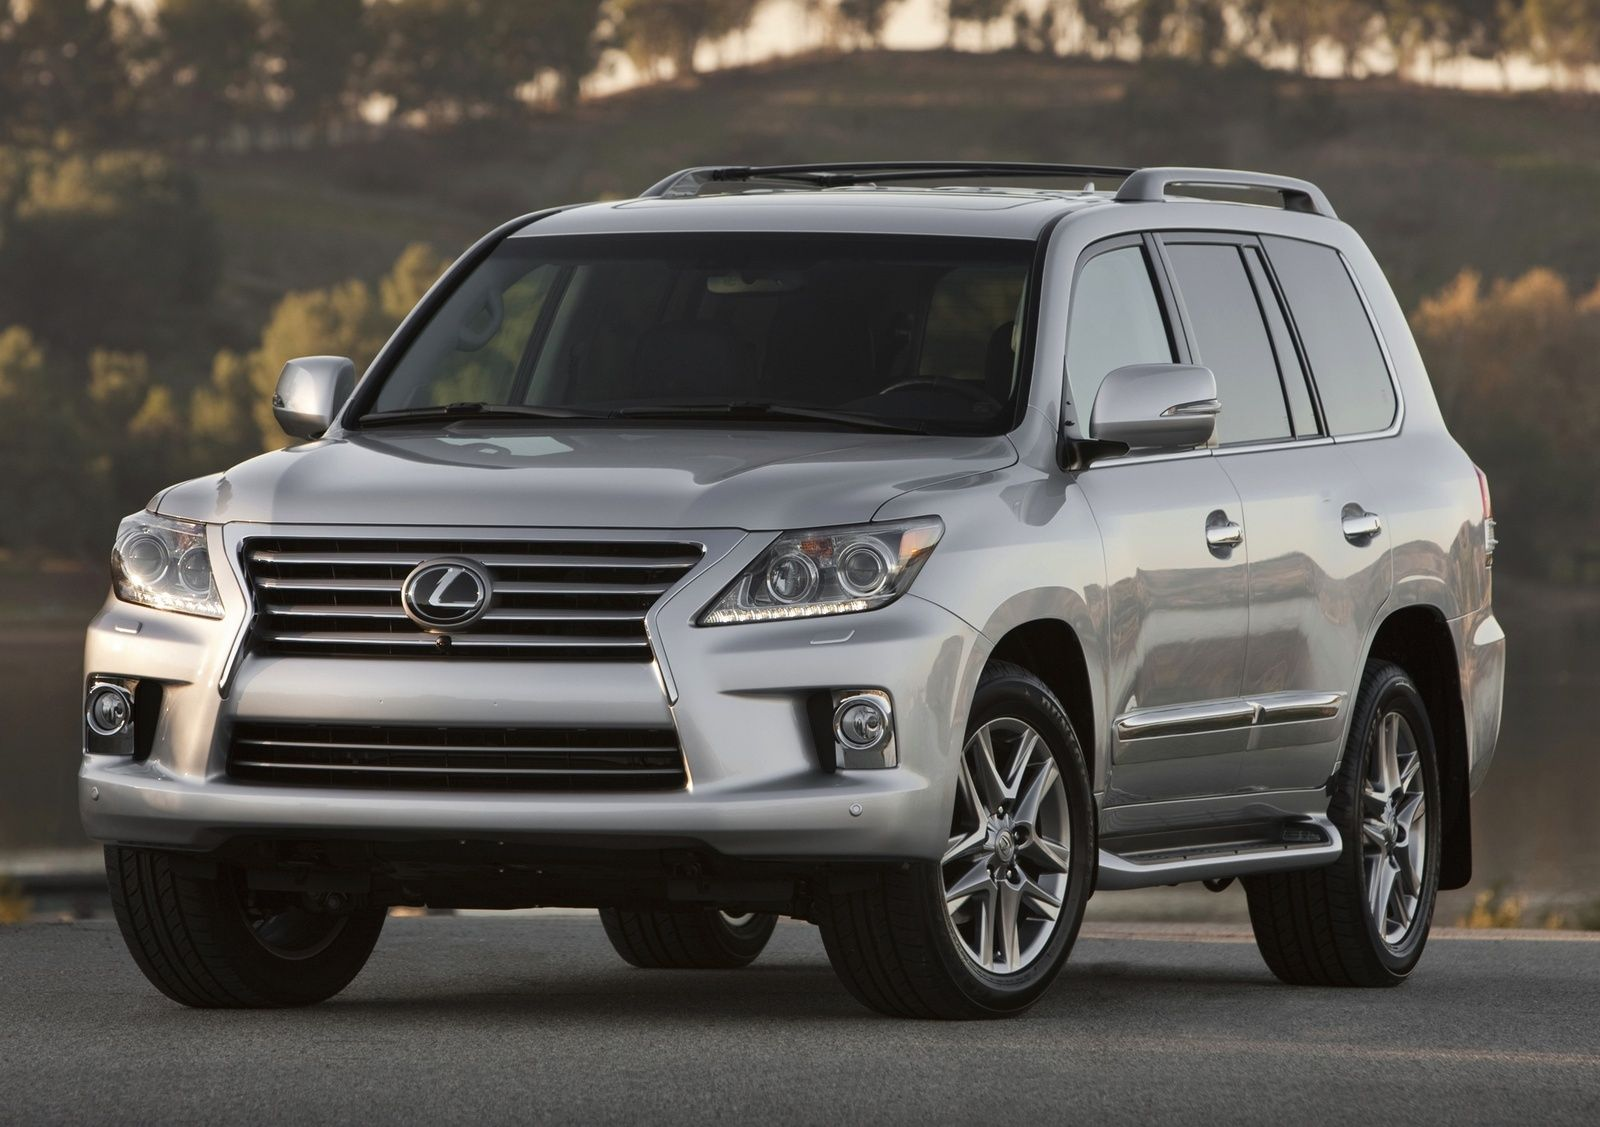 reviews sport lexus carsguide rc car price review luxury